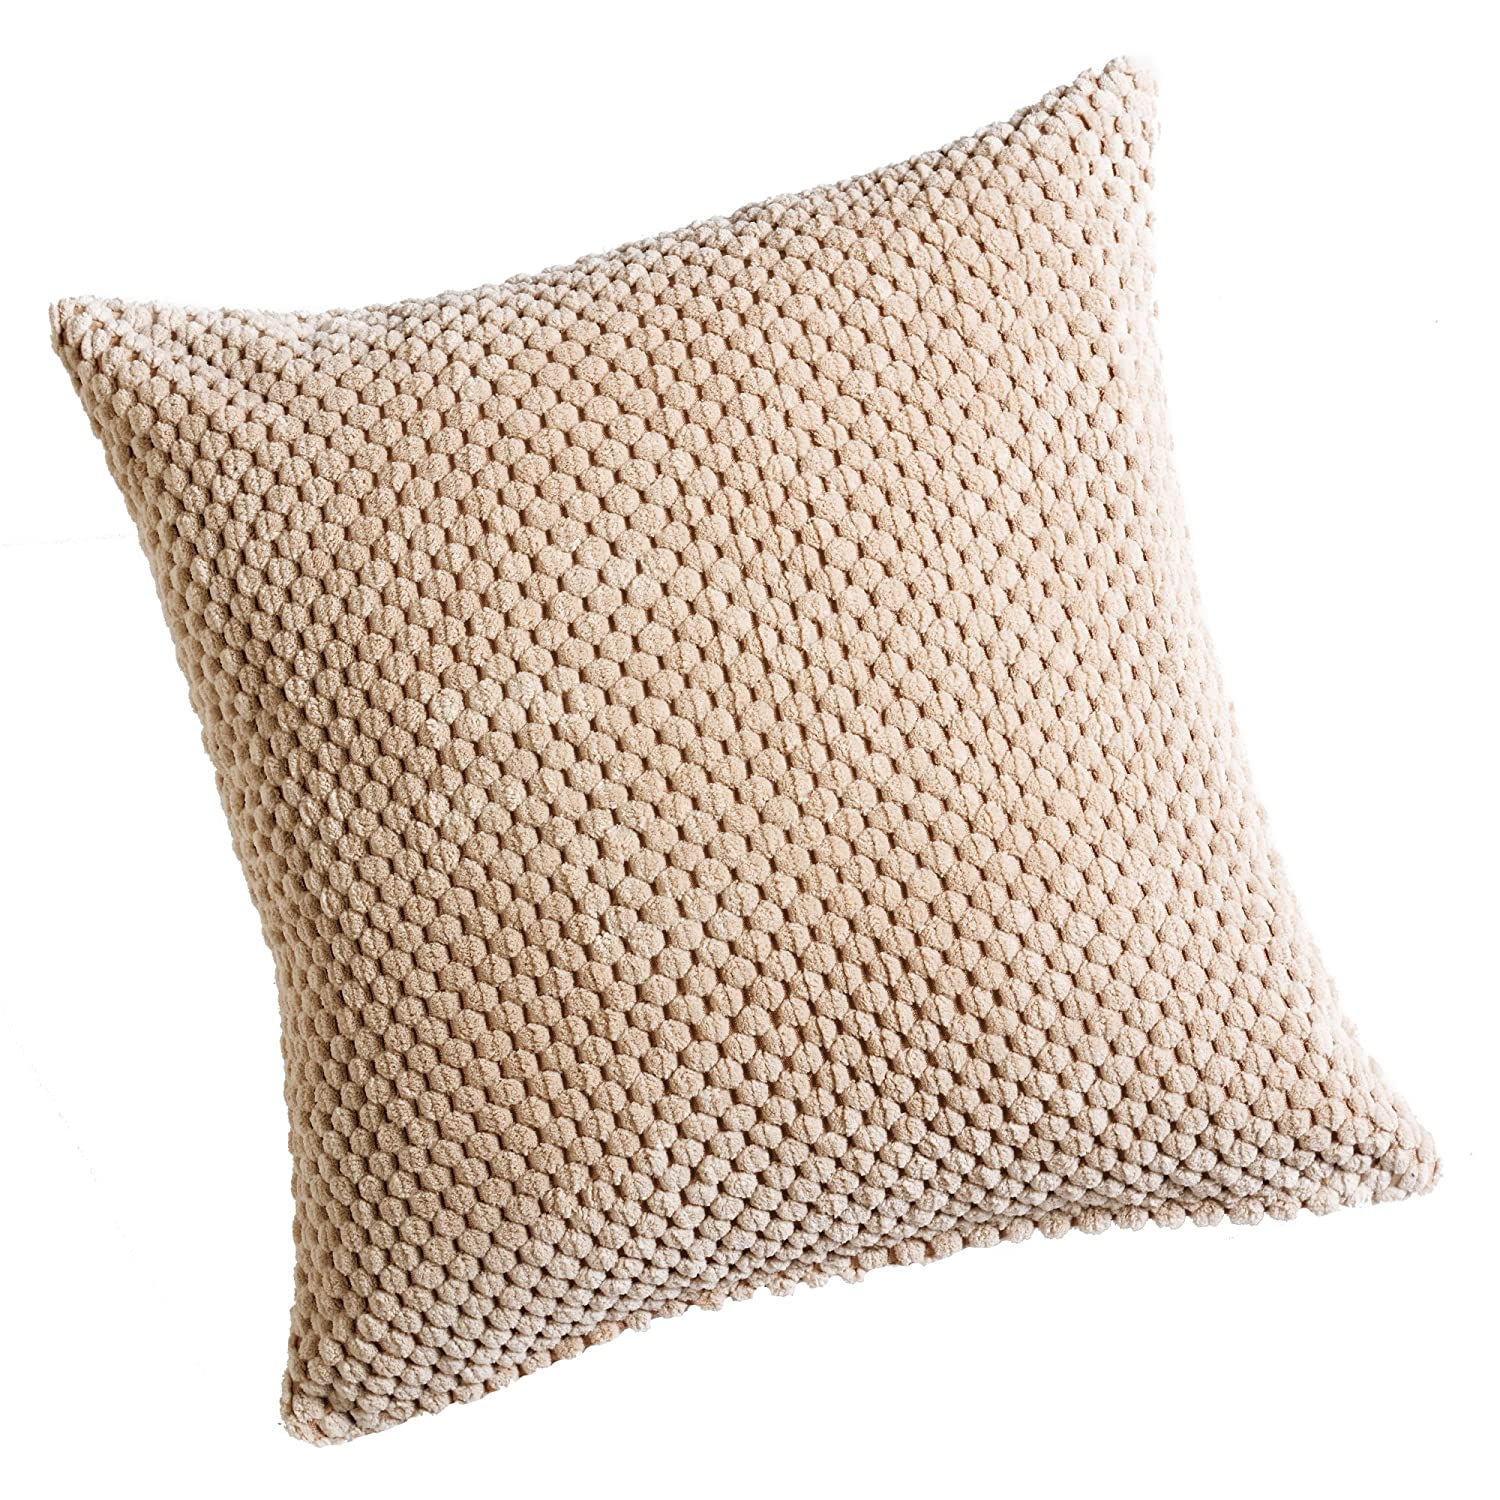 Hamilton McBride Chenille Spot Chocolate Brown Cushion Cover 20inx20in (50cmx50cm) Approximately By 4 Your Home